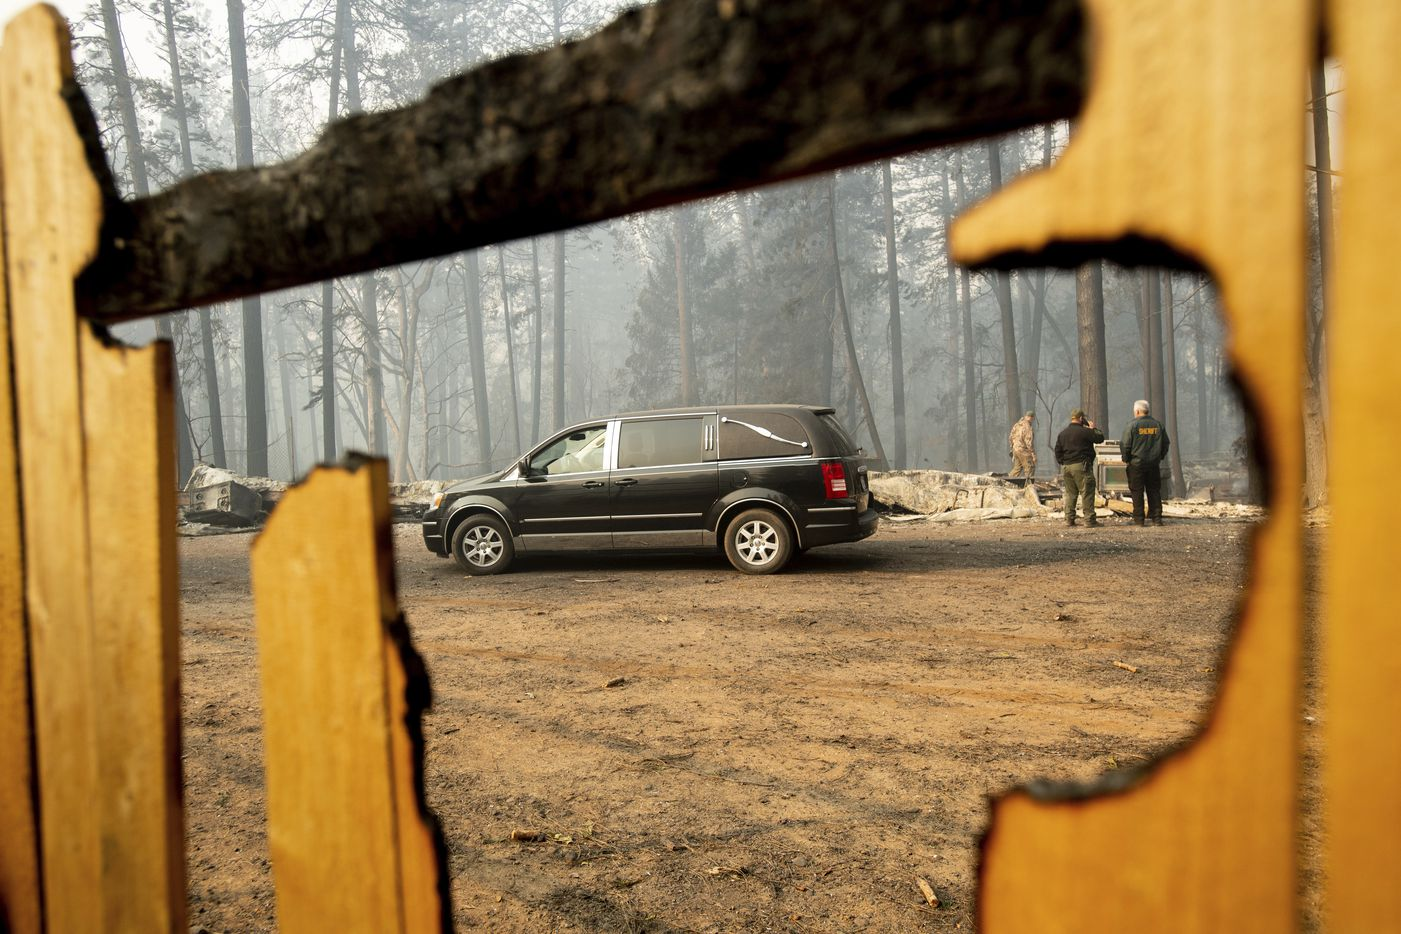 Sheriff's deputies search for human remains at a residence destroyed by the Camp Fire on Nov. 10, 2018, in Paradise, Calif. The hearse carries multiple victims.